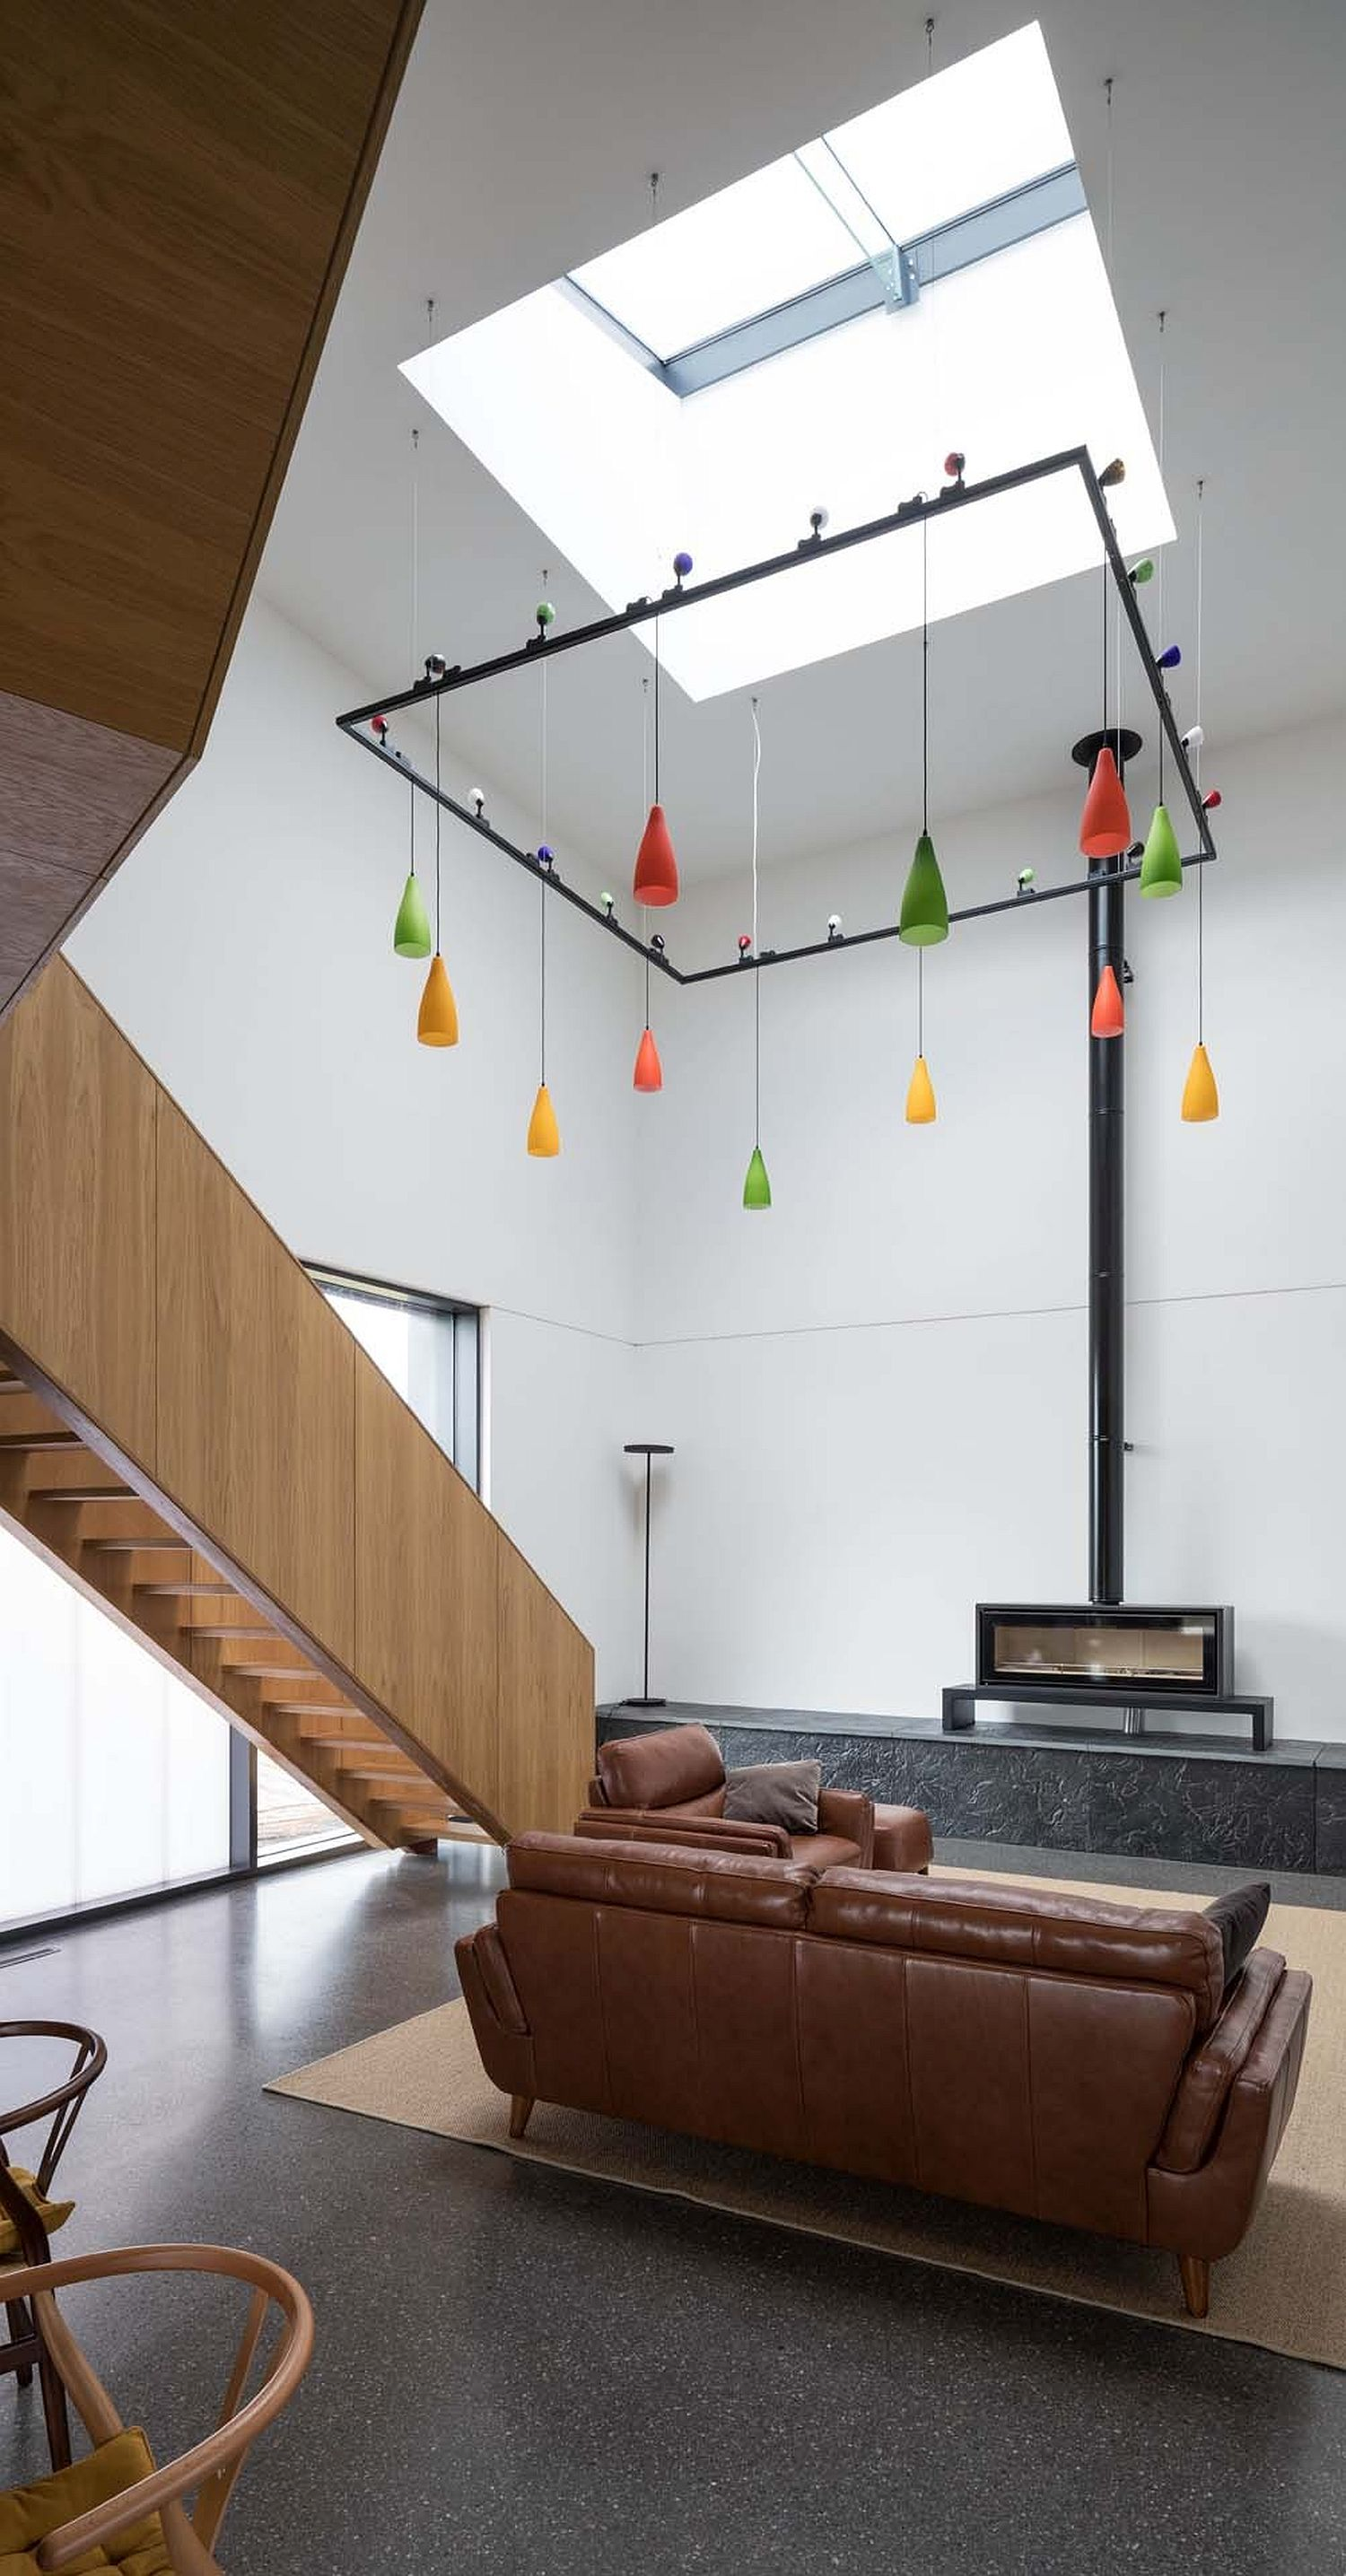 Skylights coupled with multi-colored pendants inside the house